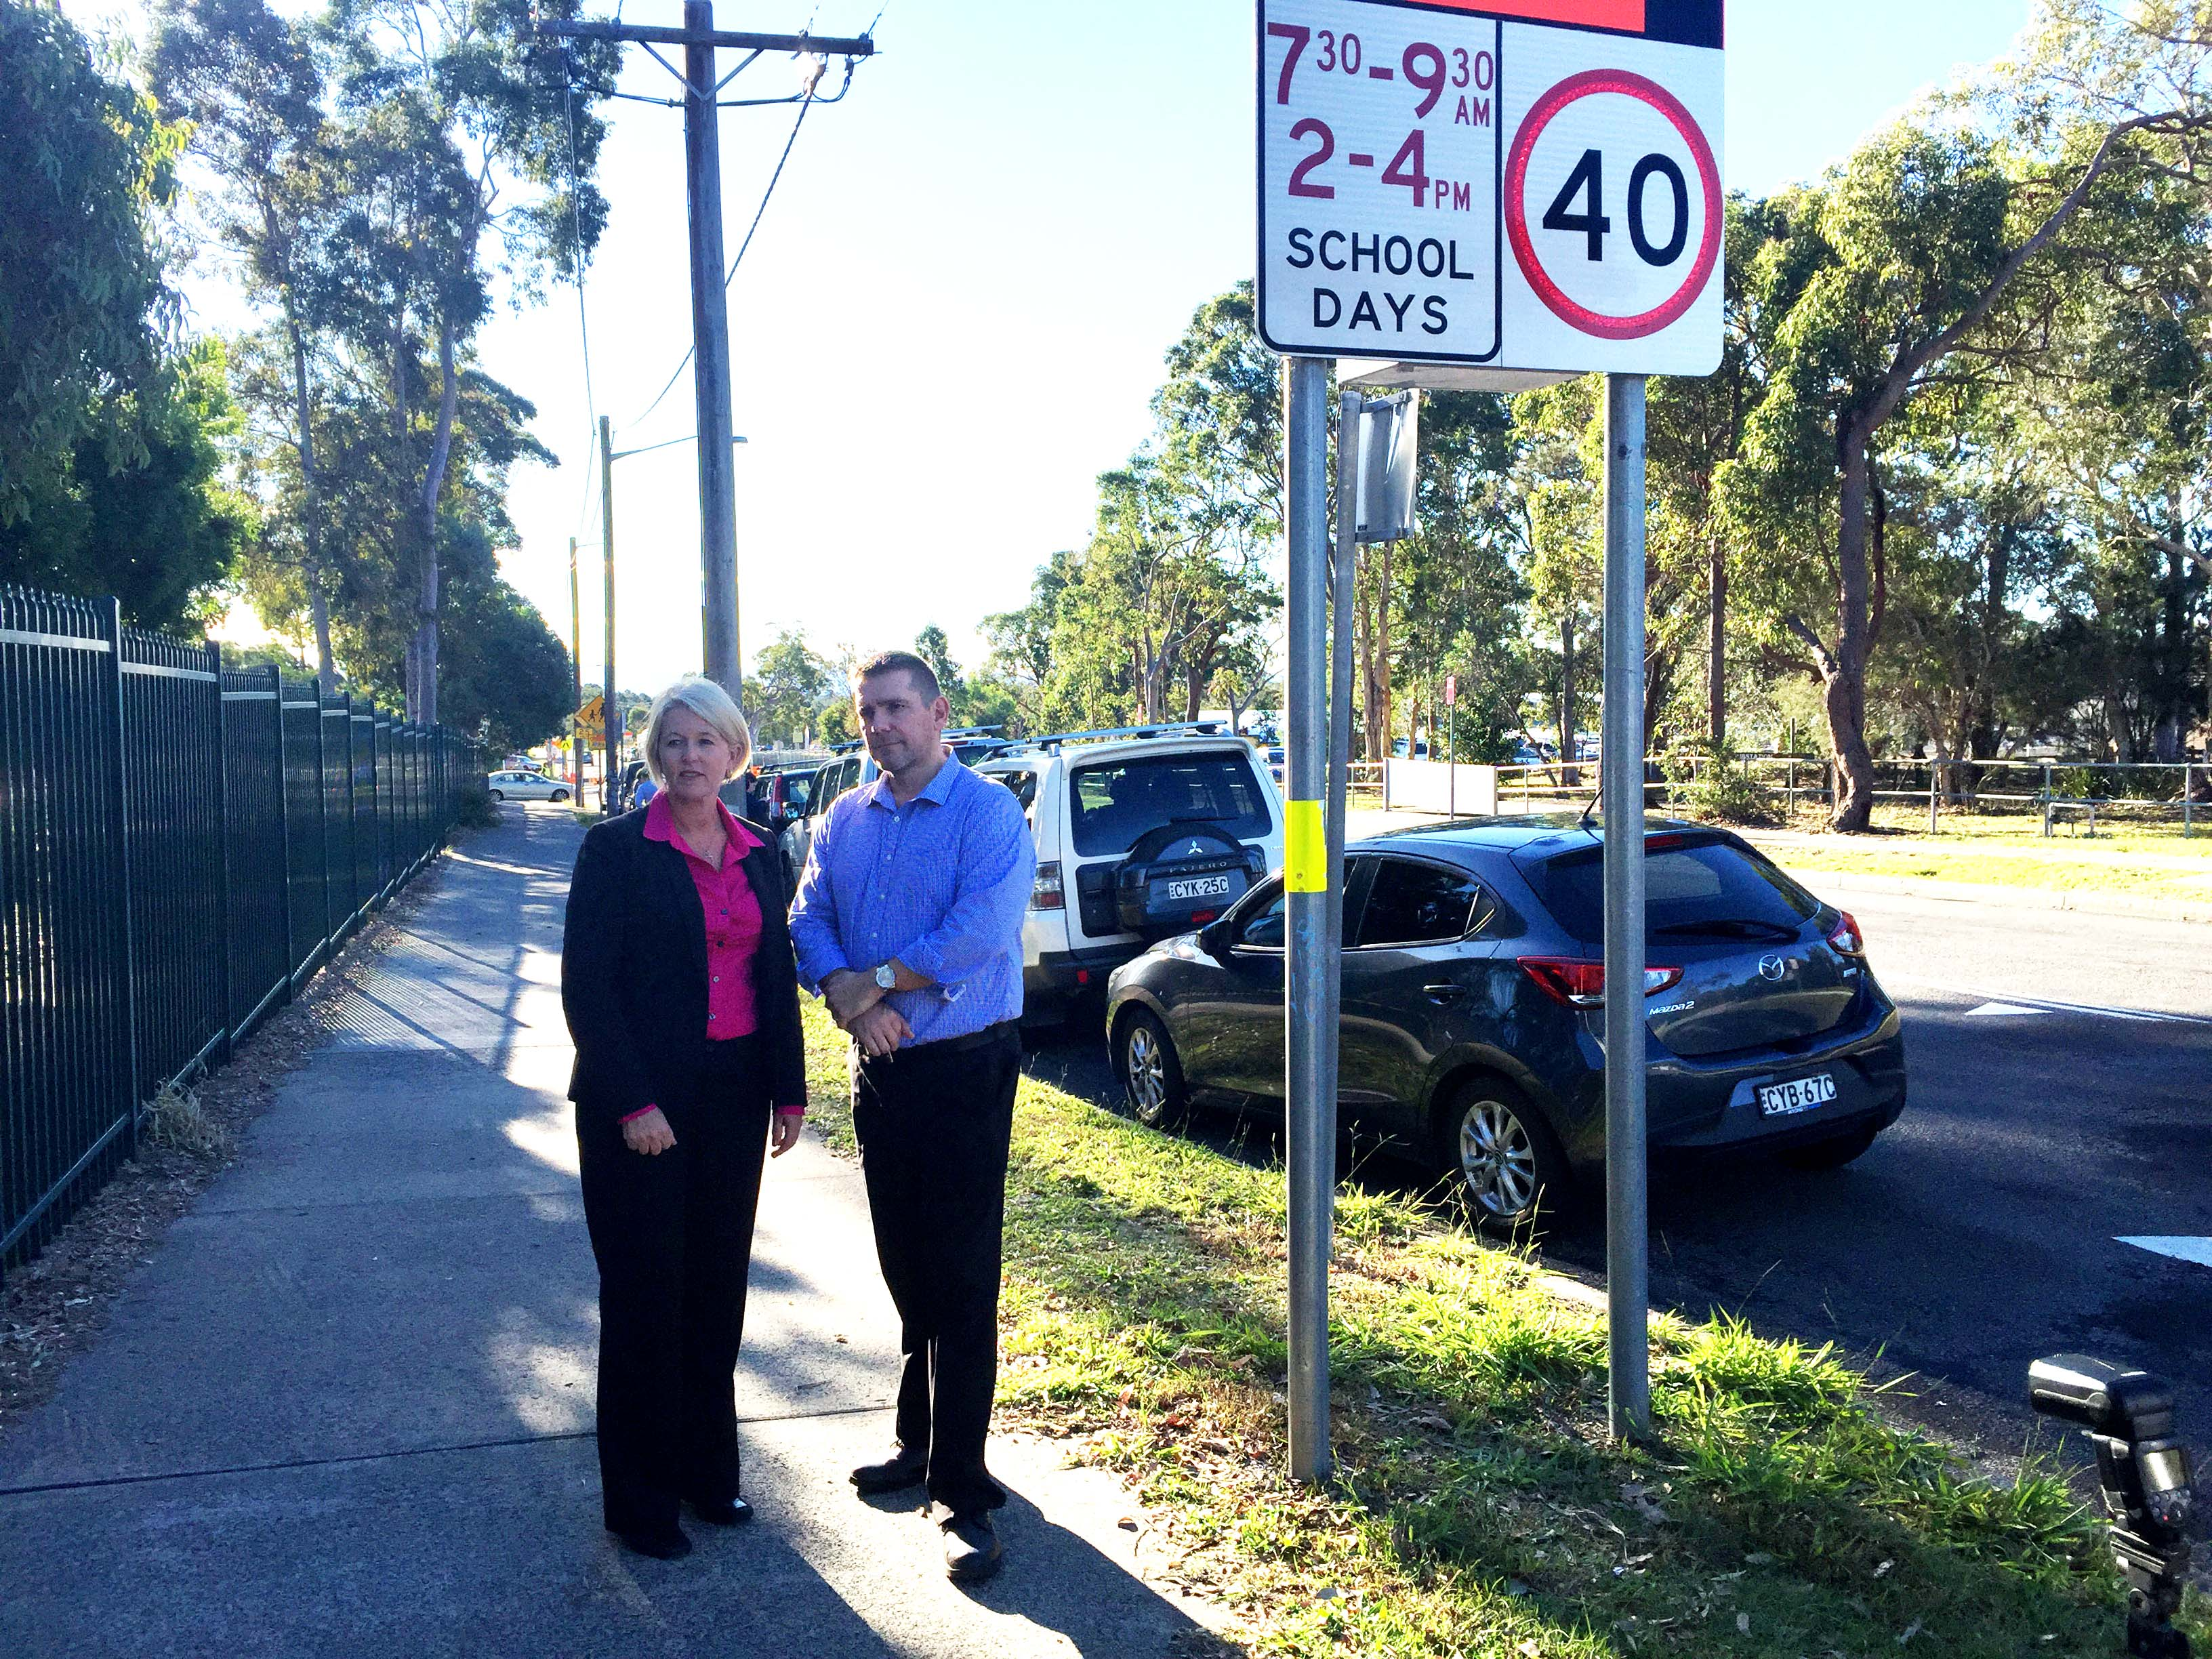 TRAFFIC SOLUTION NEEDED FOR CARTERS ROAD IN NSW BUDGET